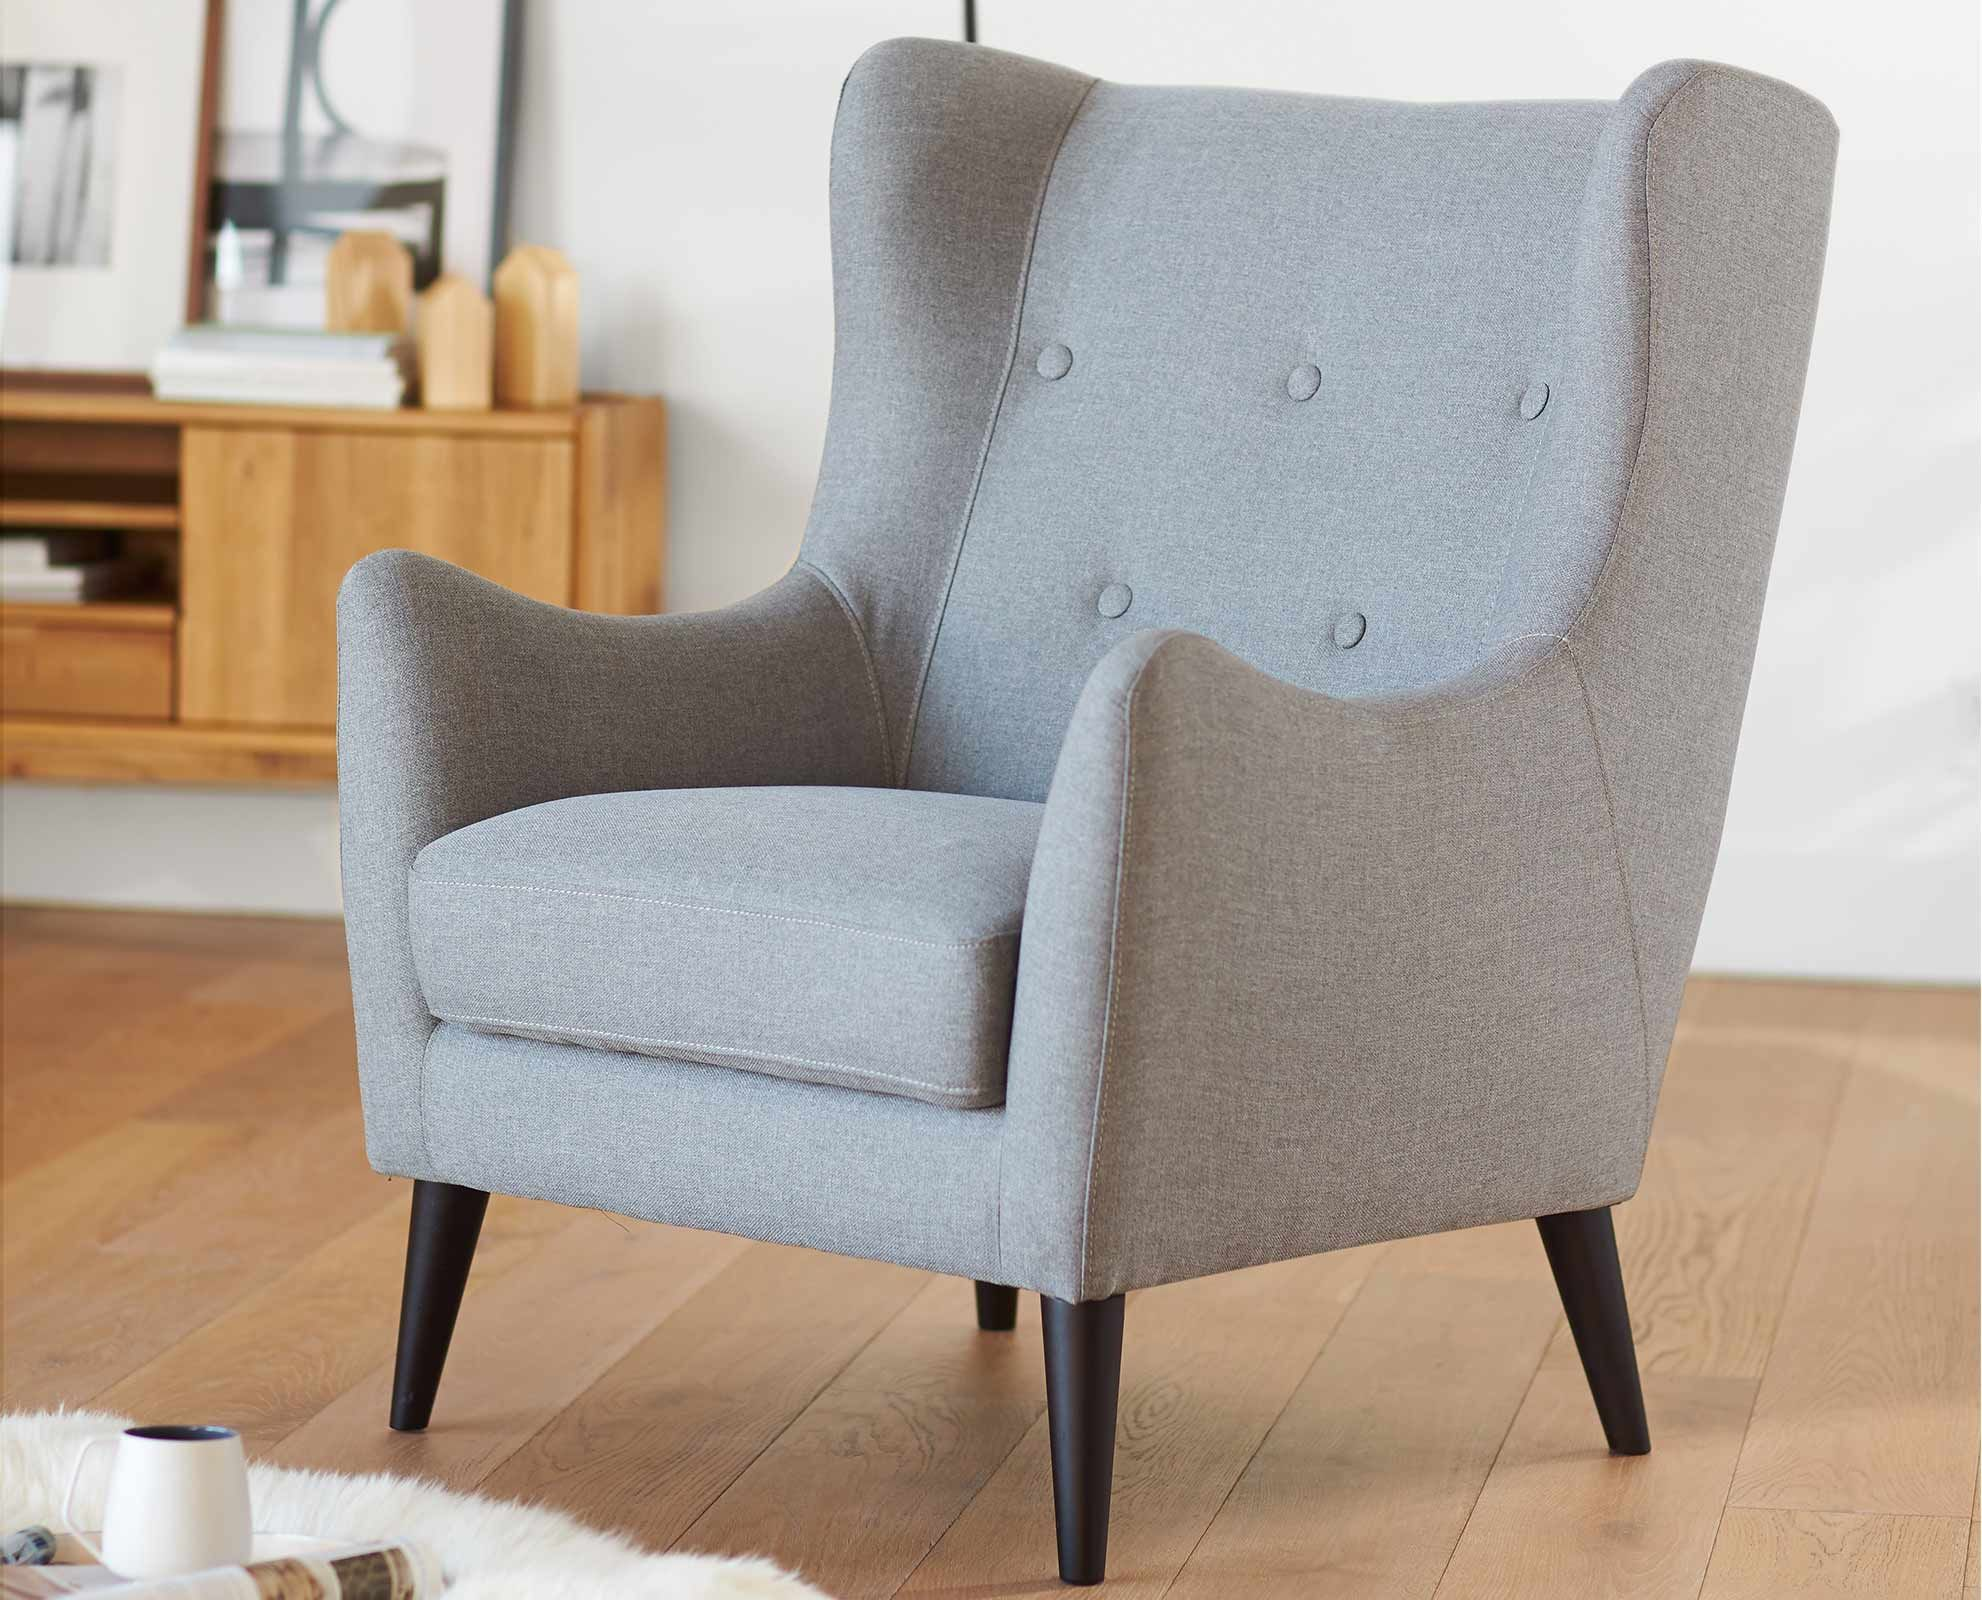 Dania A modern take on a traditional wingback chair the Kamma